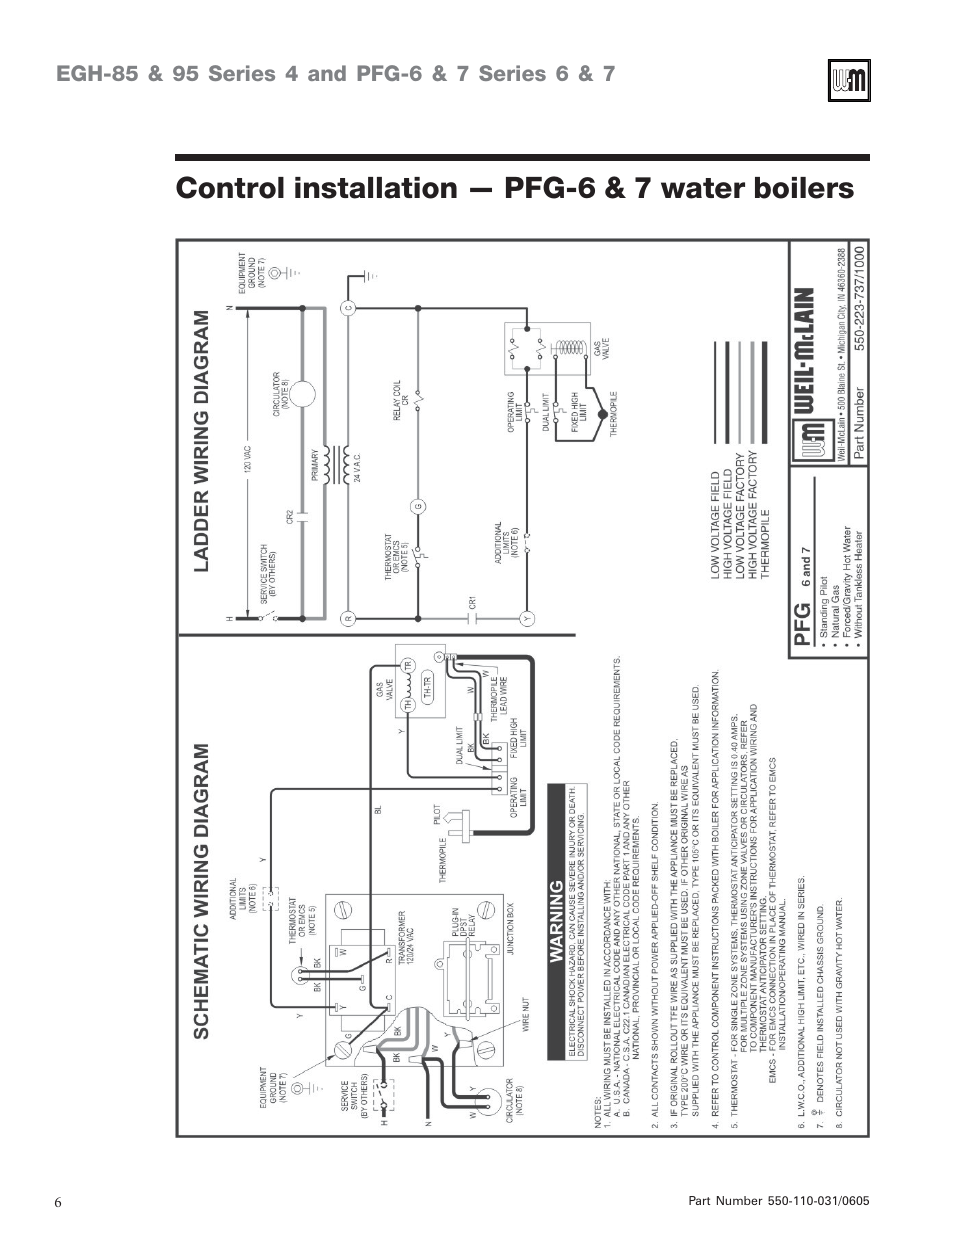 Control installation — pfg-6 & 7 water boilers | Weil-McLain PFG-7 User  Manual | Page 6 / 16